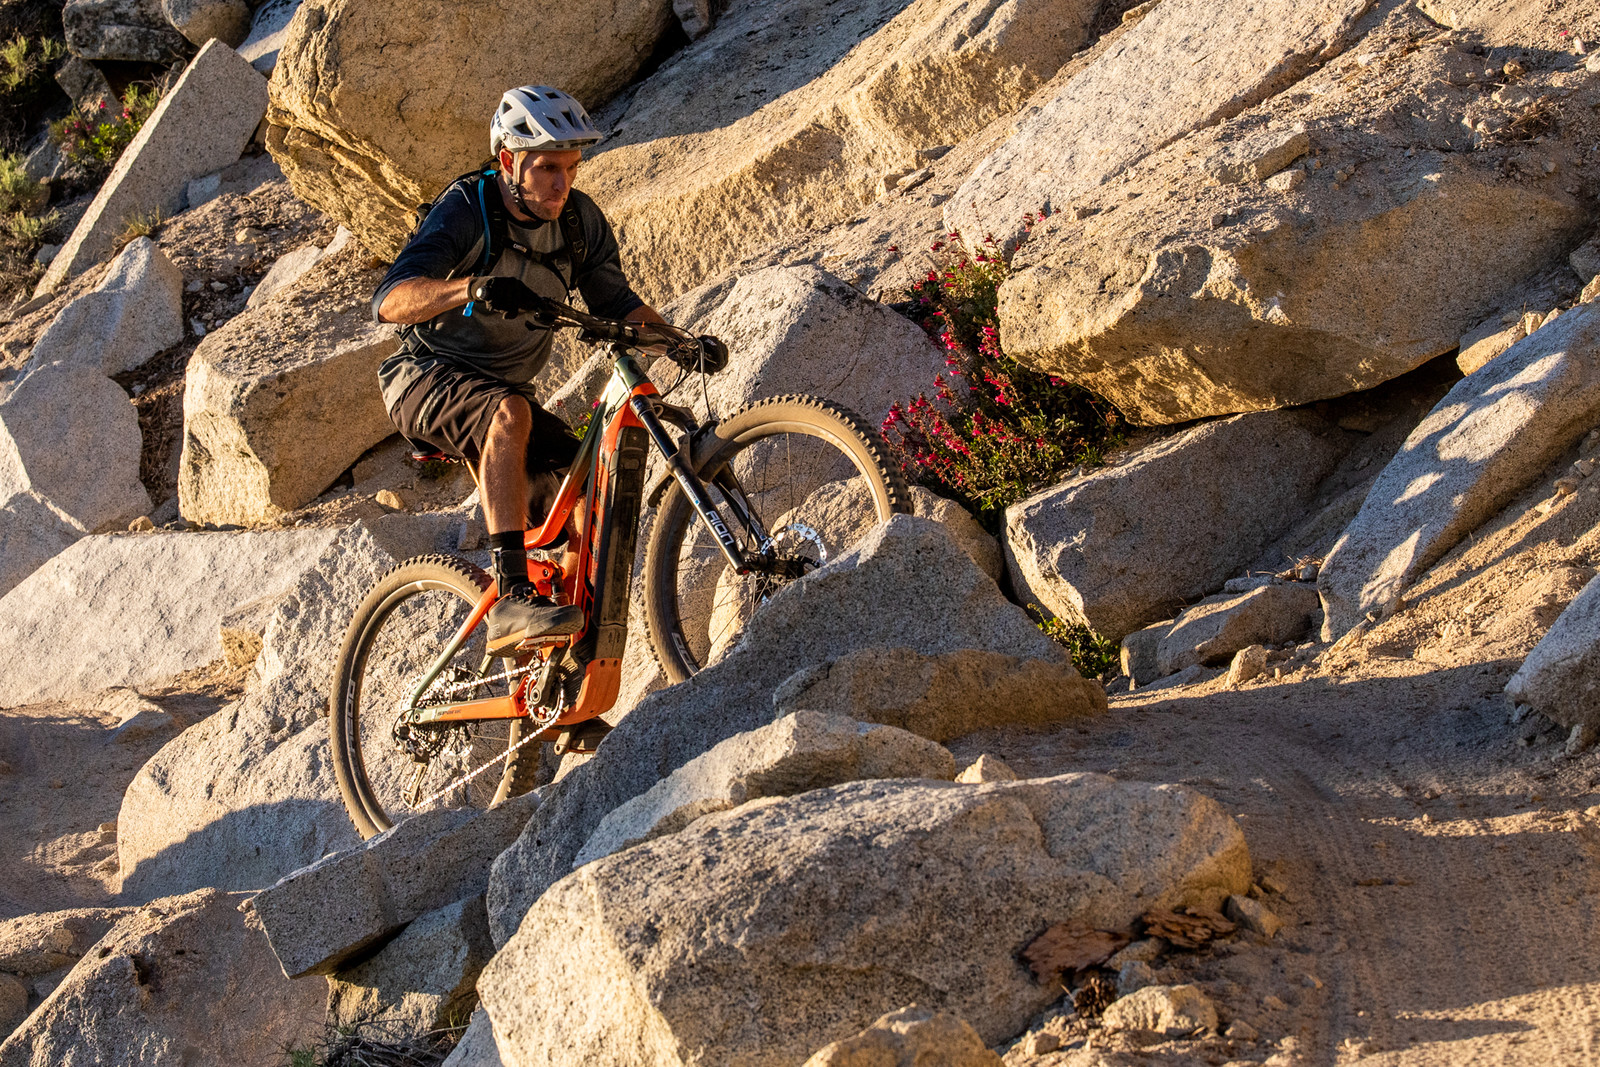 Cautiously pushing his limits on technical climbs, pedal assist making all the difference.